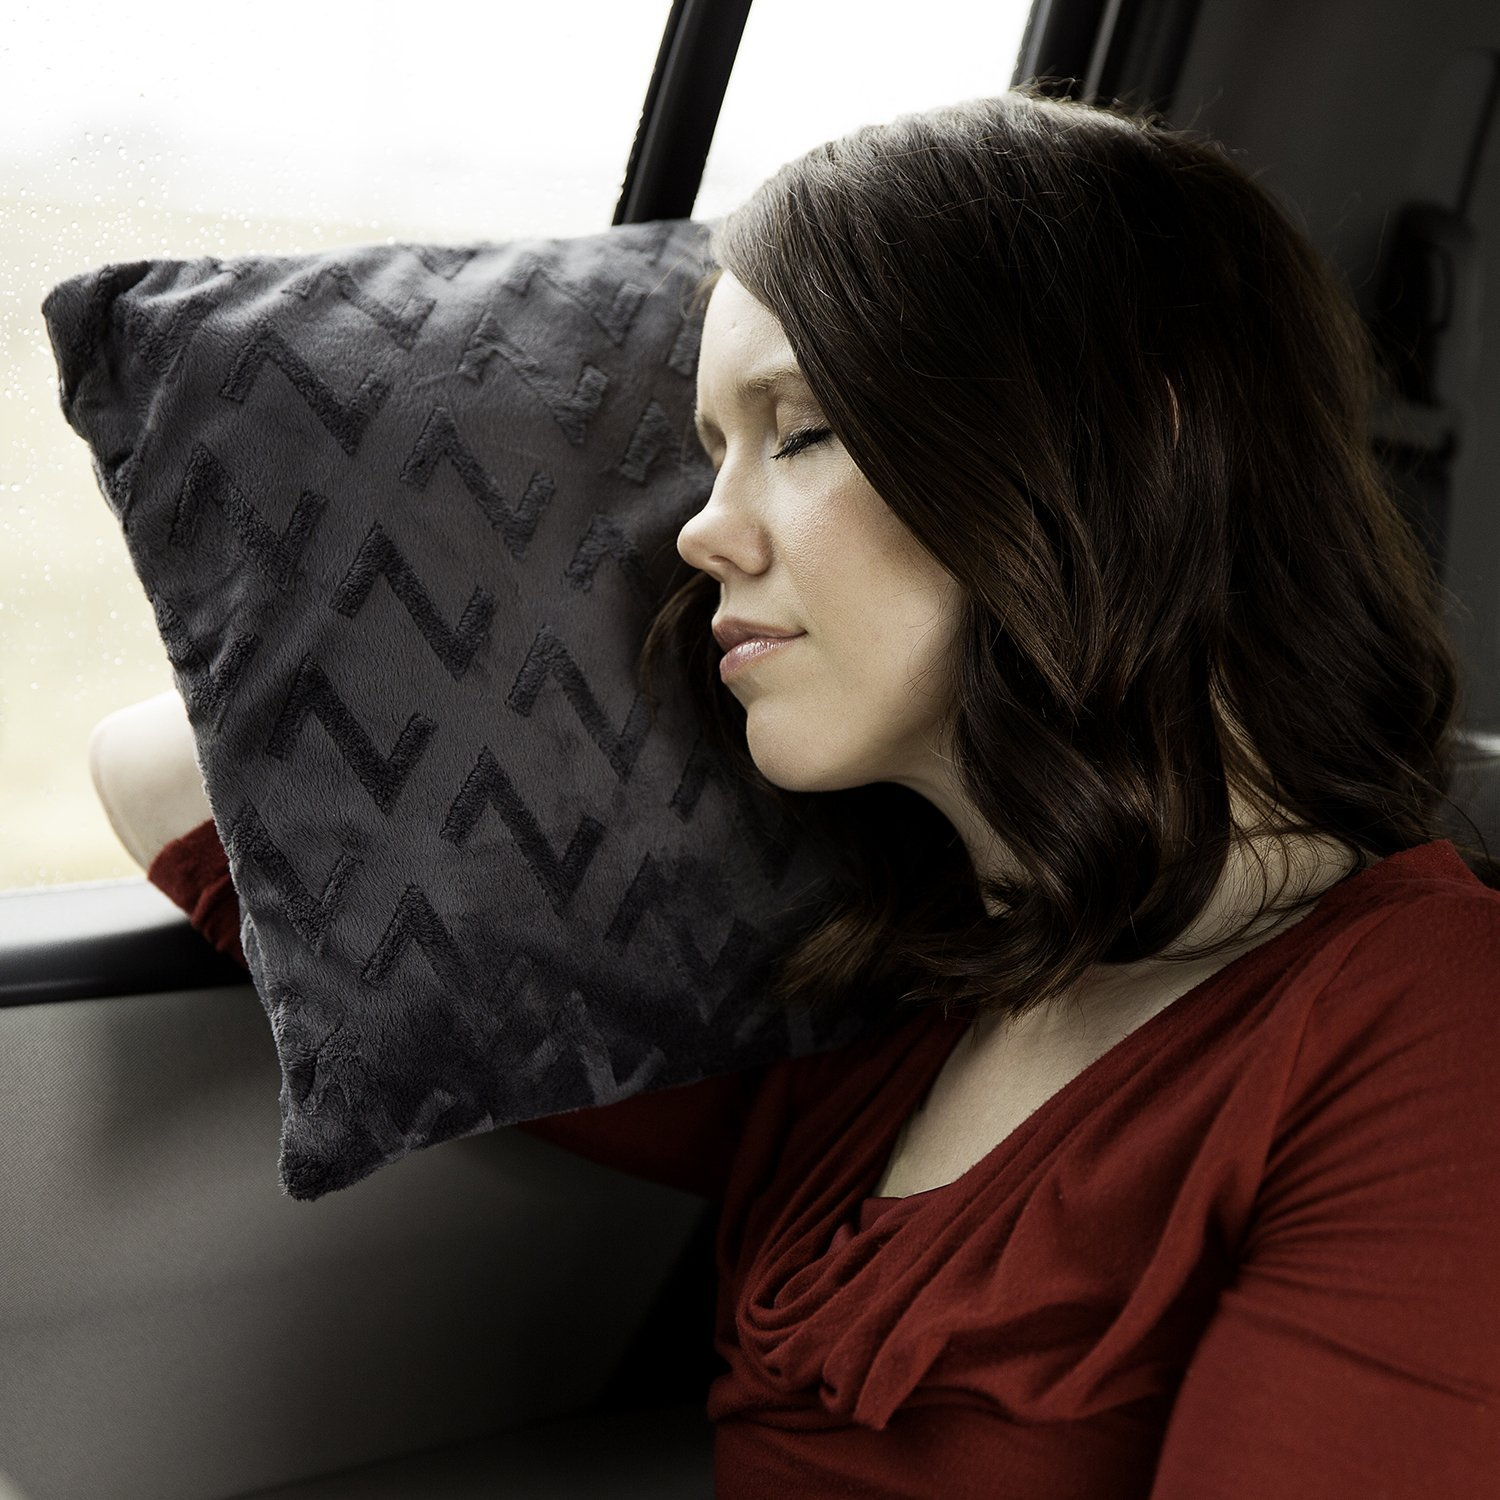 Malouf Z Travel DOUGH Memory Foam Pillow